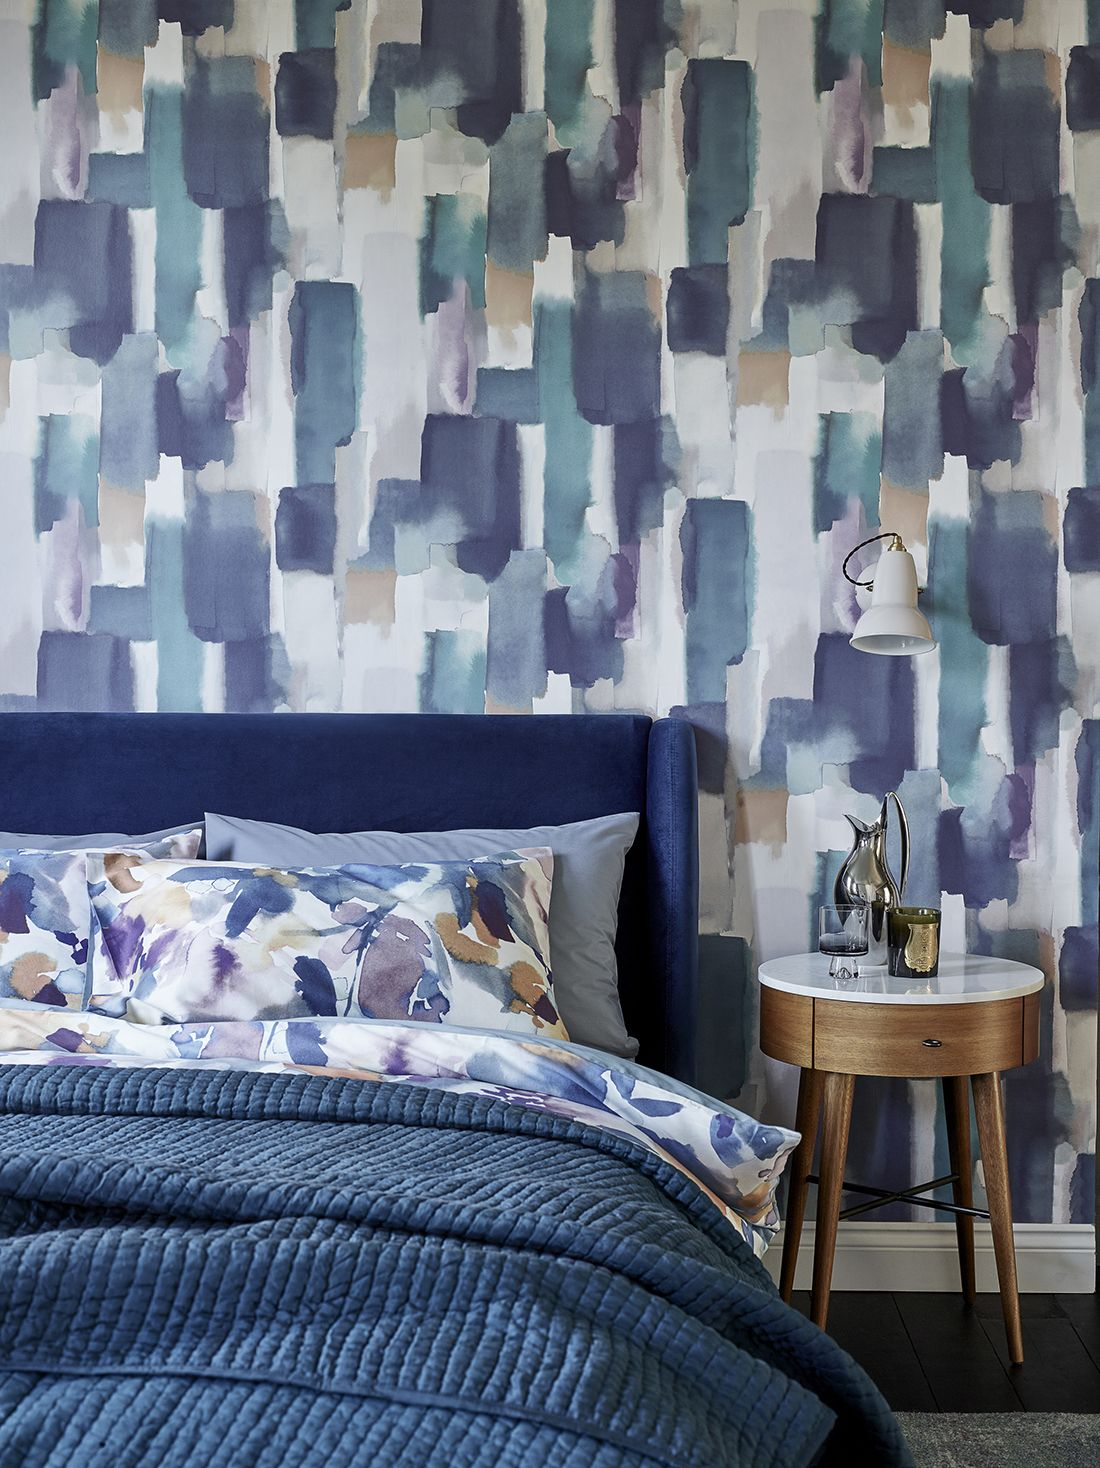 Sometimes, all a bedroom needs is a fresh sheet of wallpaper to